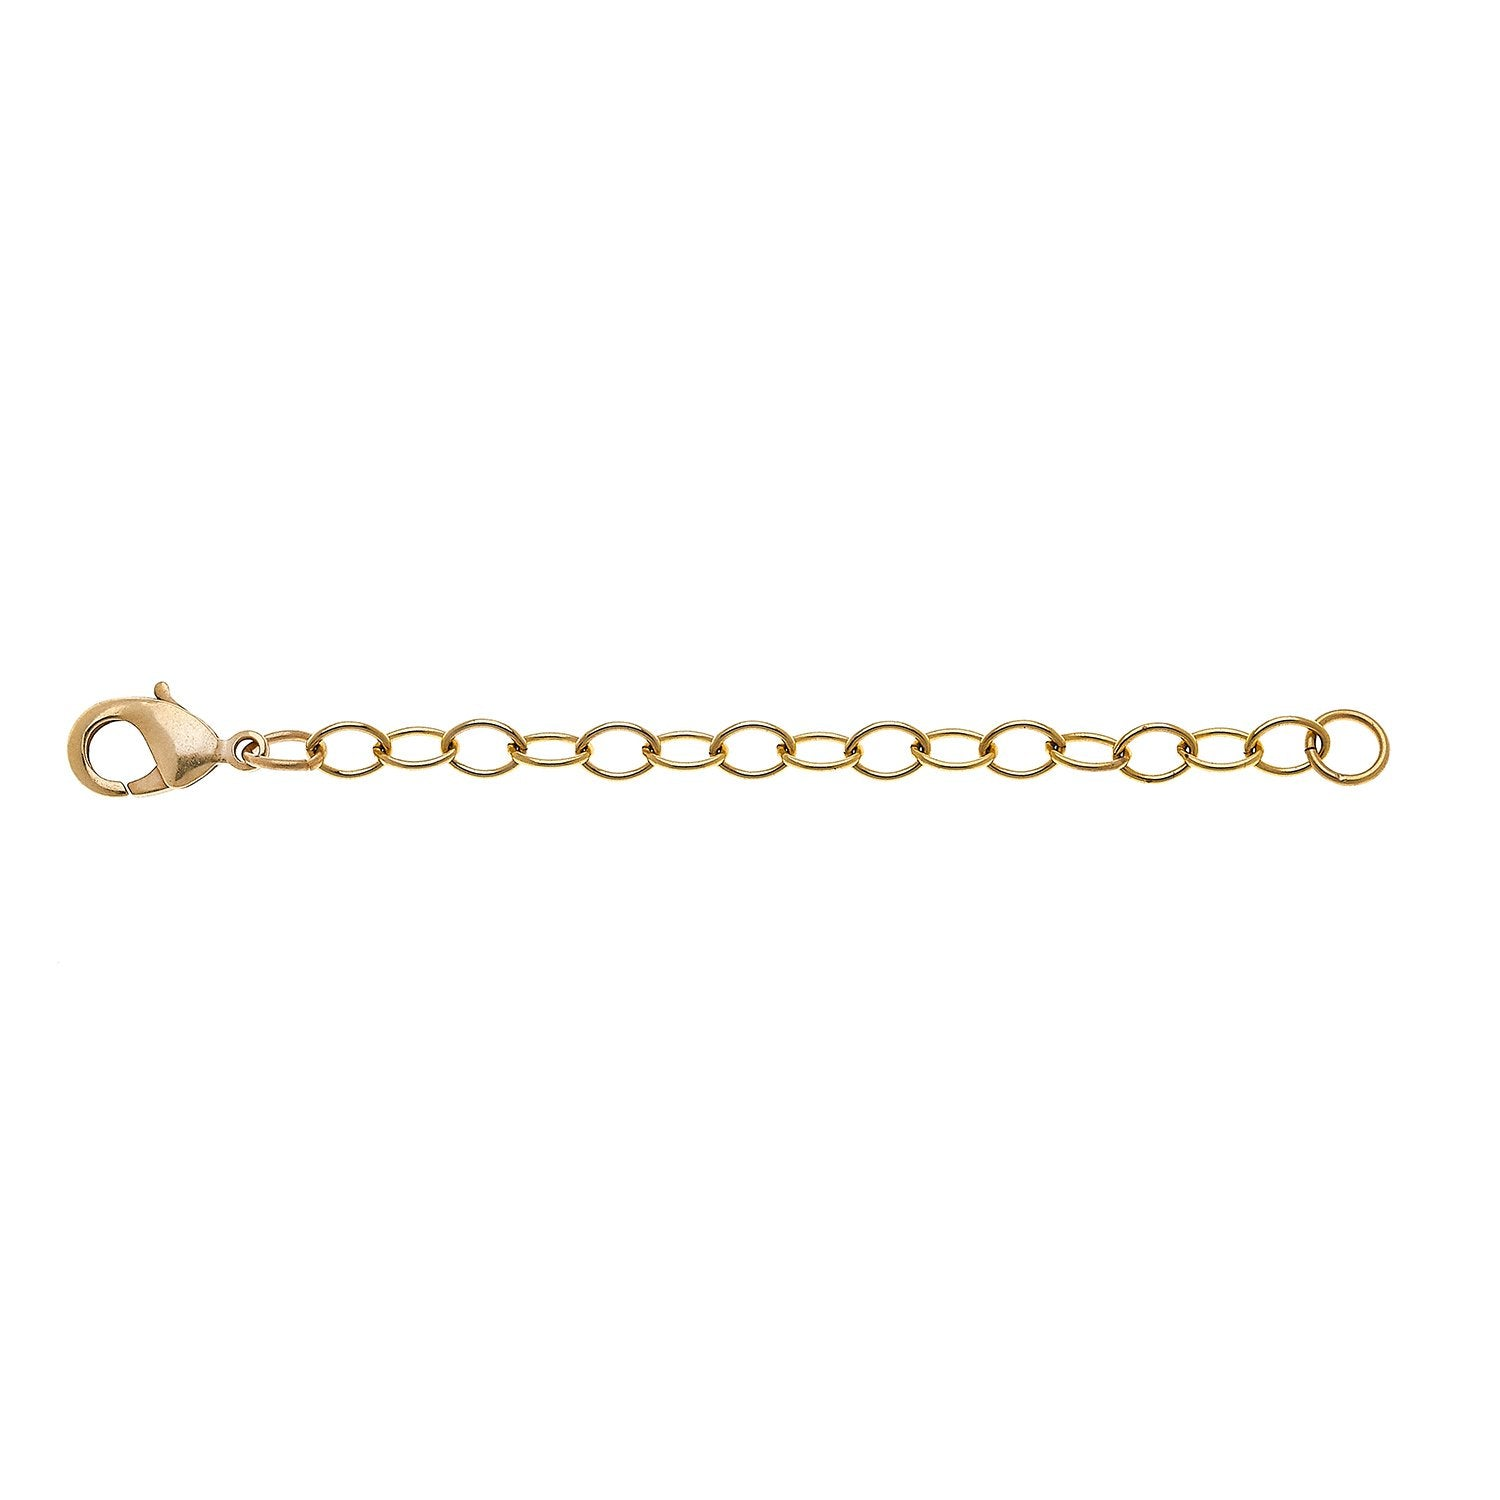 Gold Necklace Chain Extender